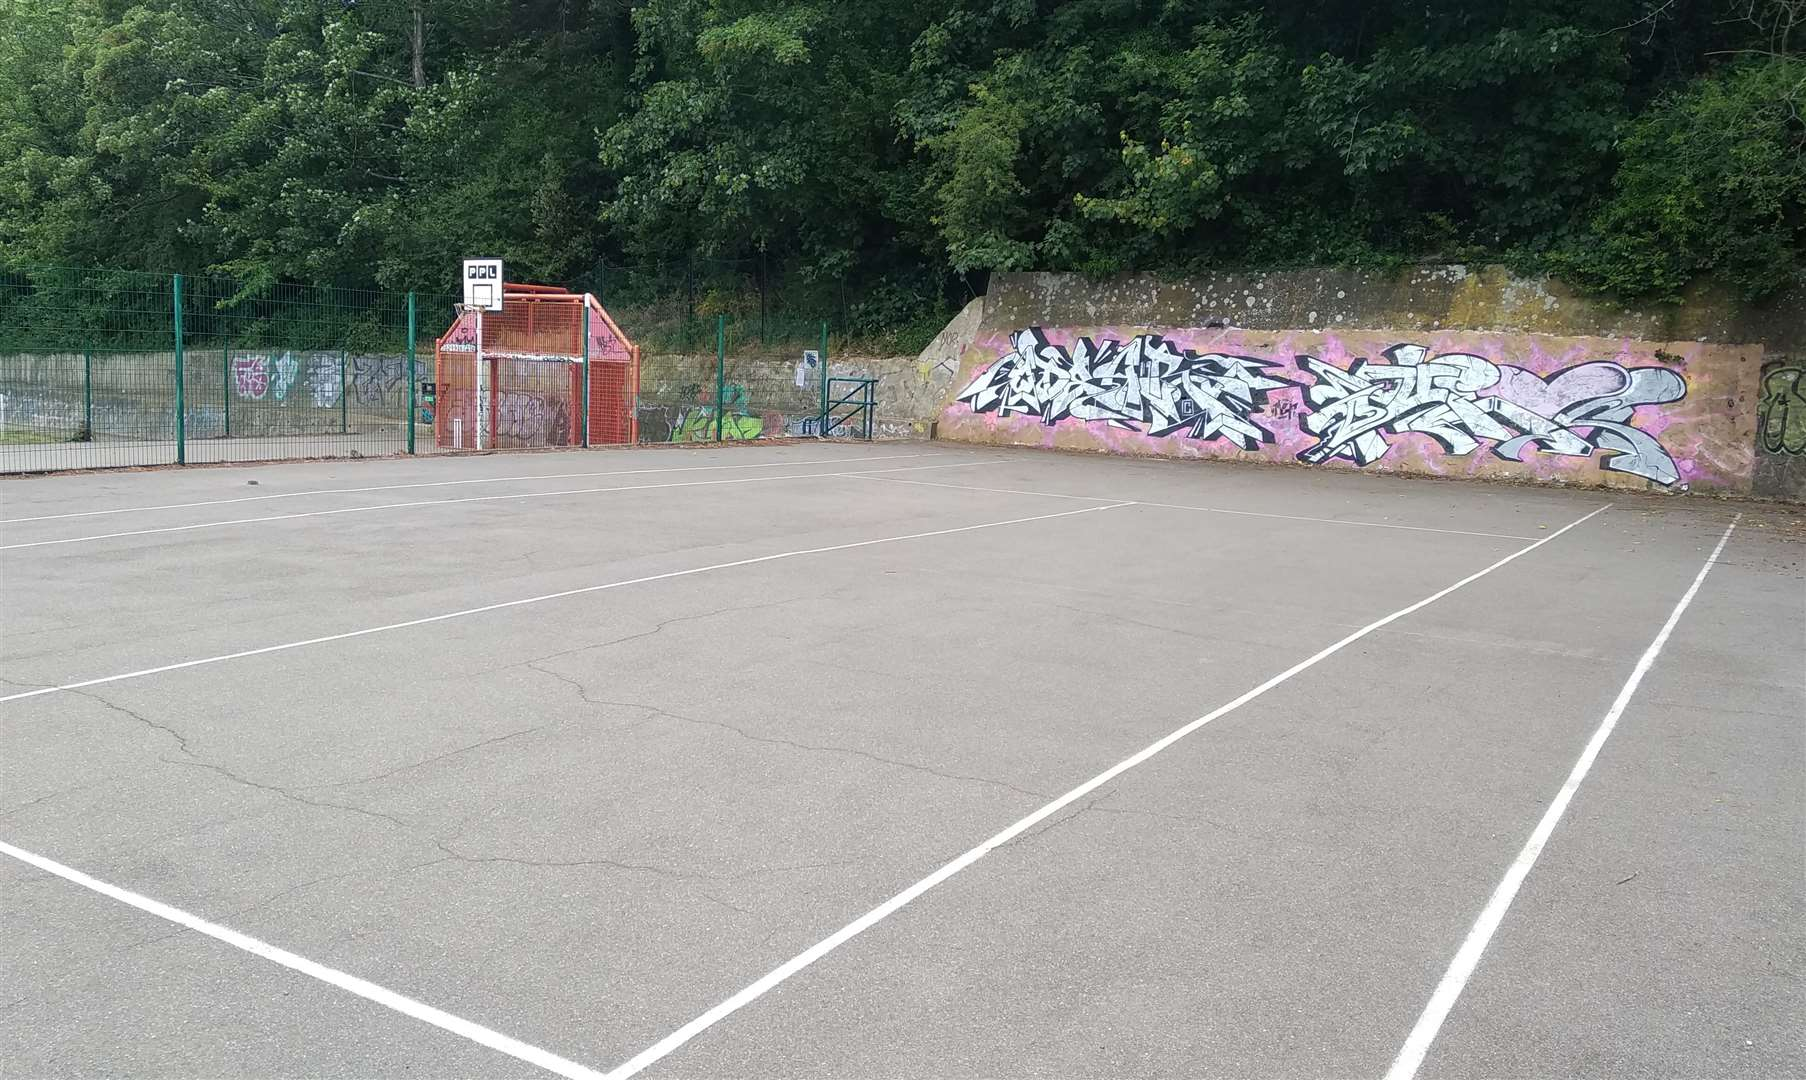 The tennis net has been removed after being broken. Picture: Cllr Tim Prater